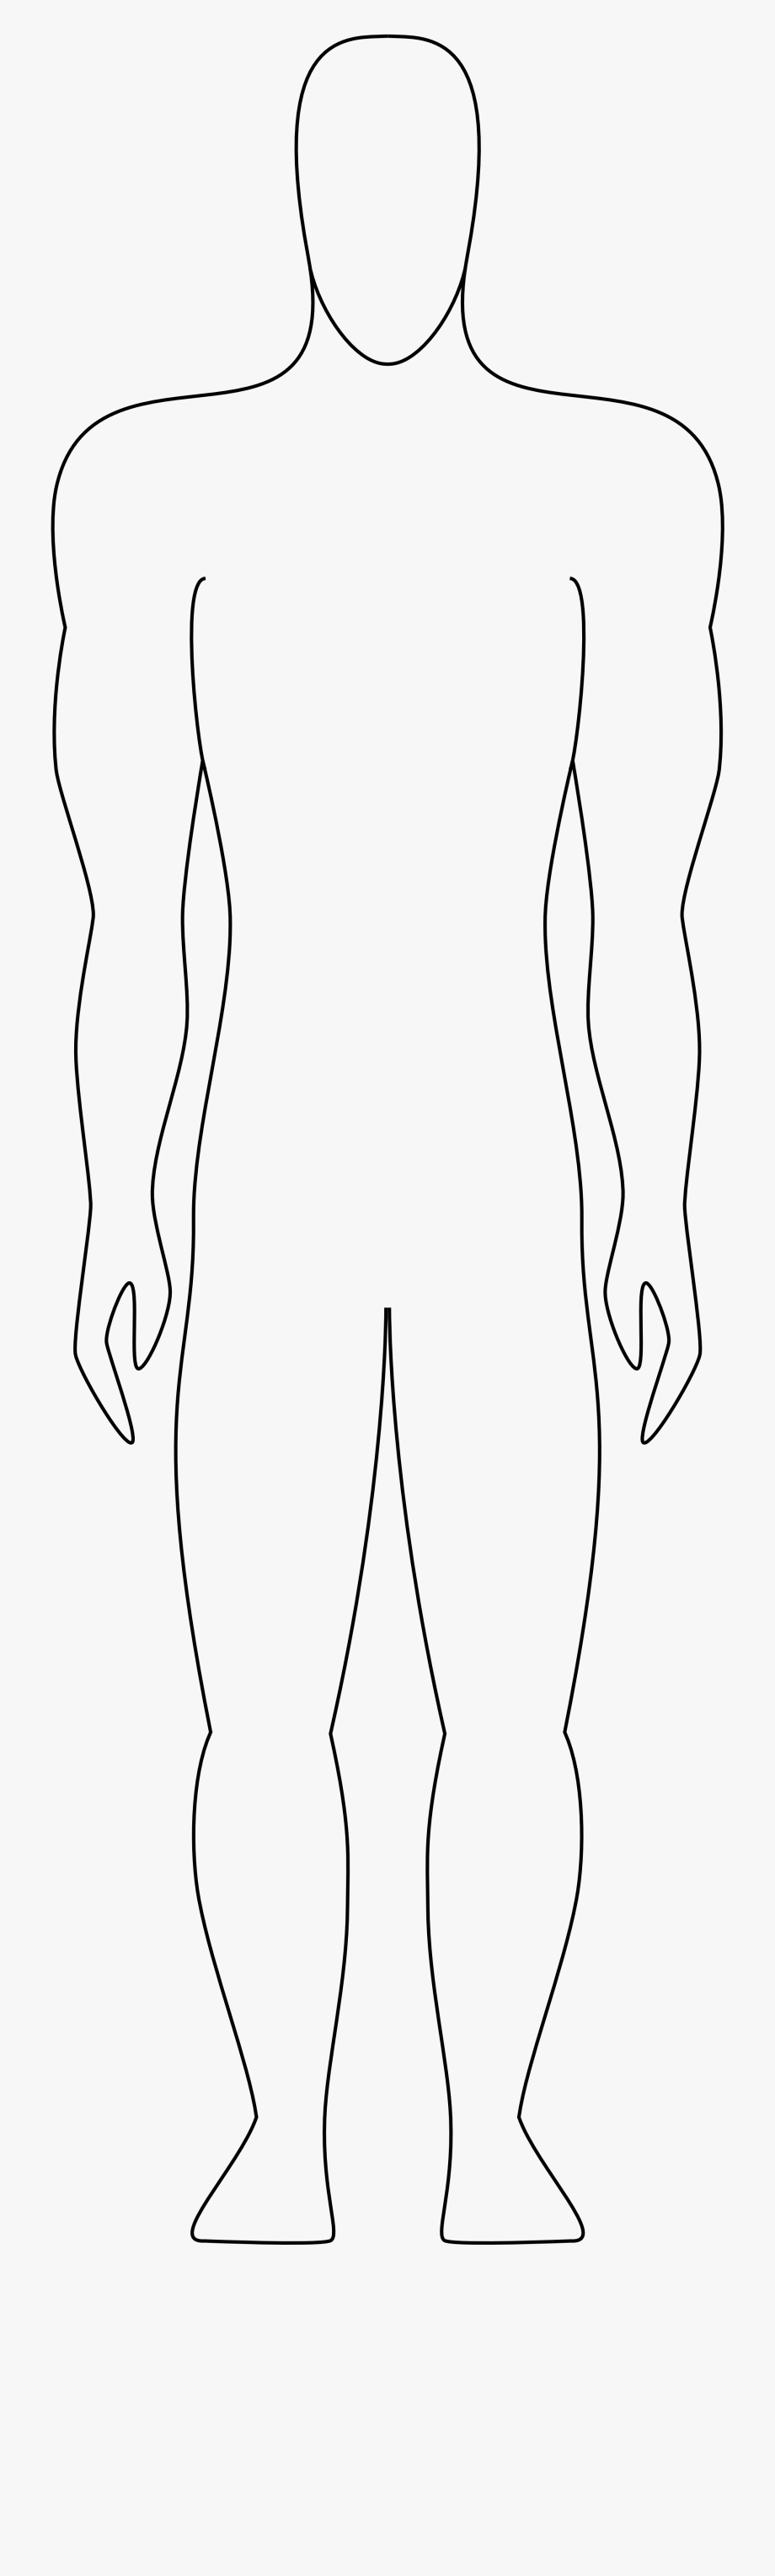 human figure outline.